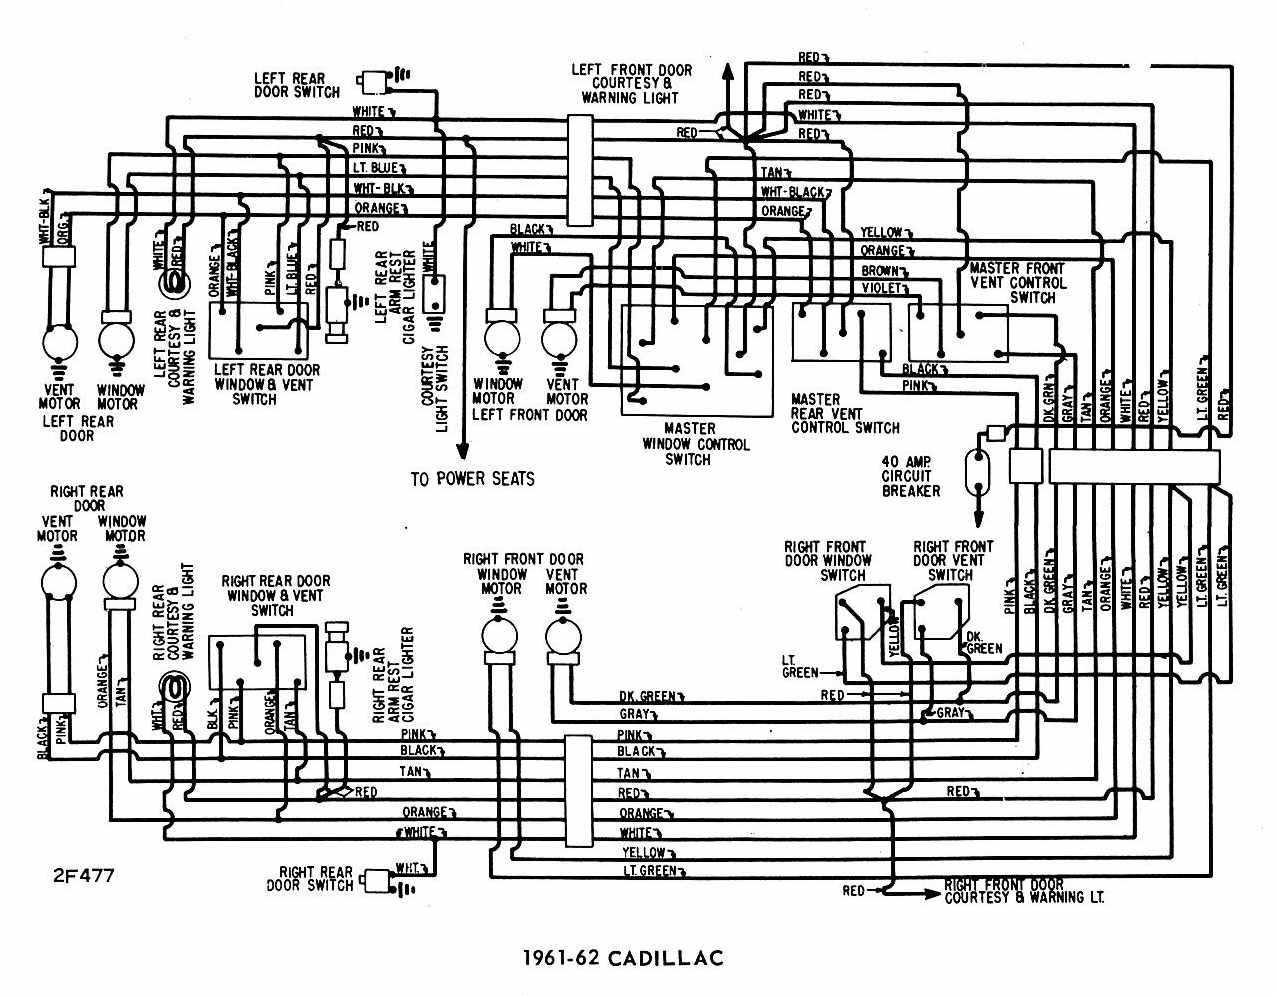 cadillac car manuals wiring diagrams pdf fault codes rh automotive manuals net 2001 Cadillac Seville SLS Recalls 2000 Cadillac Seville SLS Manual